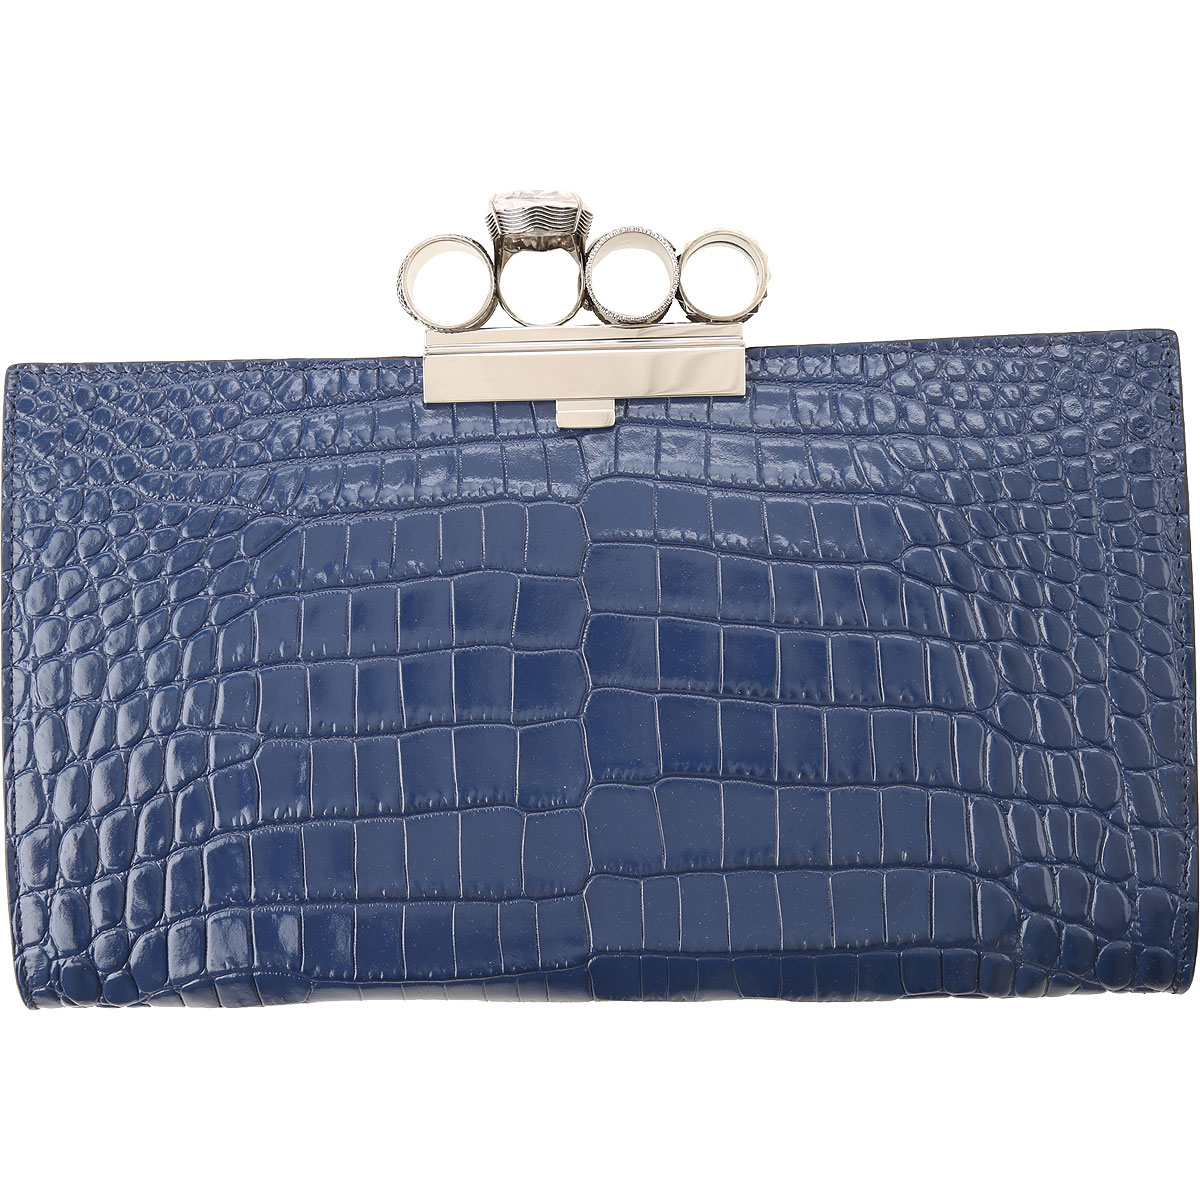 Alexander McQueen Clutch Bag On Sale, Industrial Blue, Leather, 2019